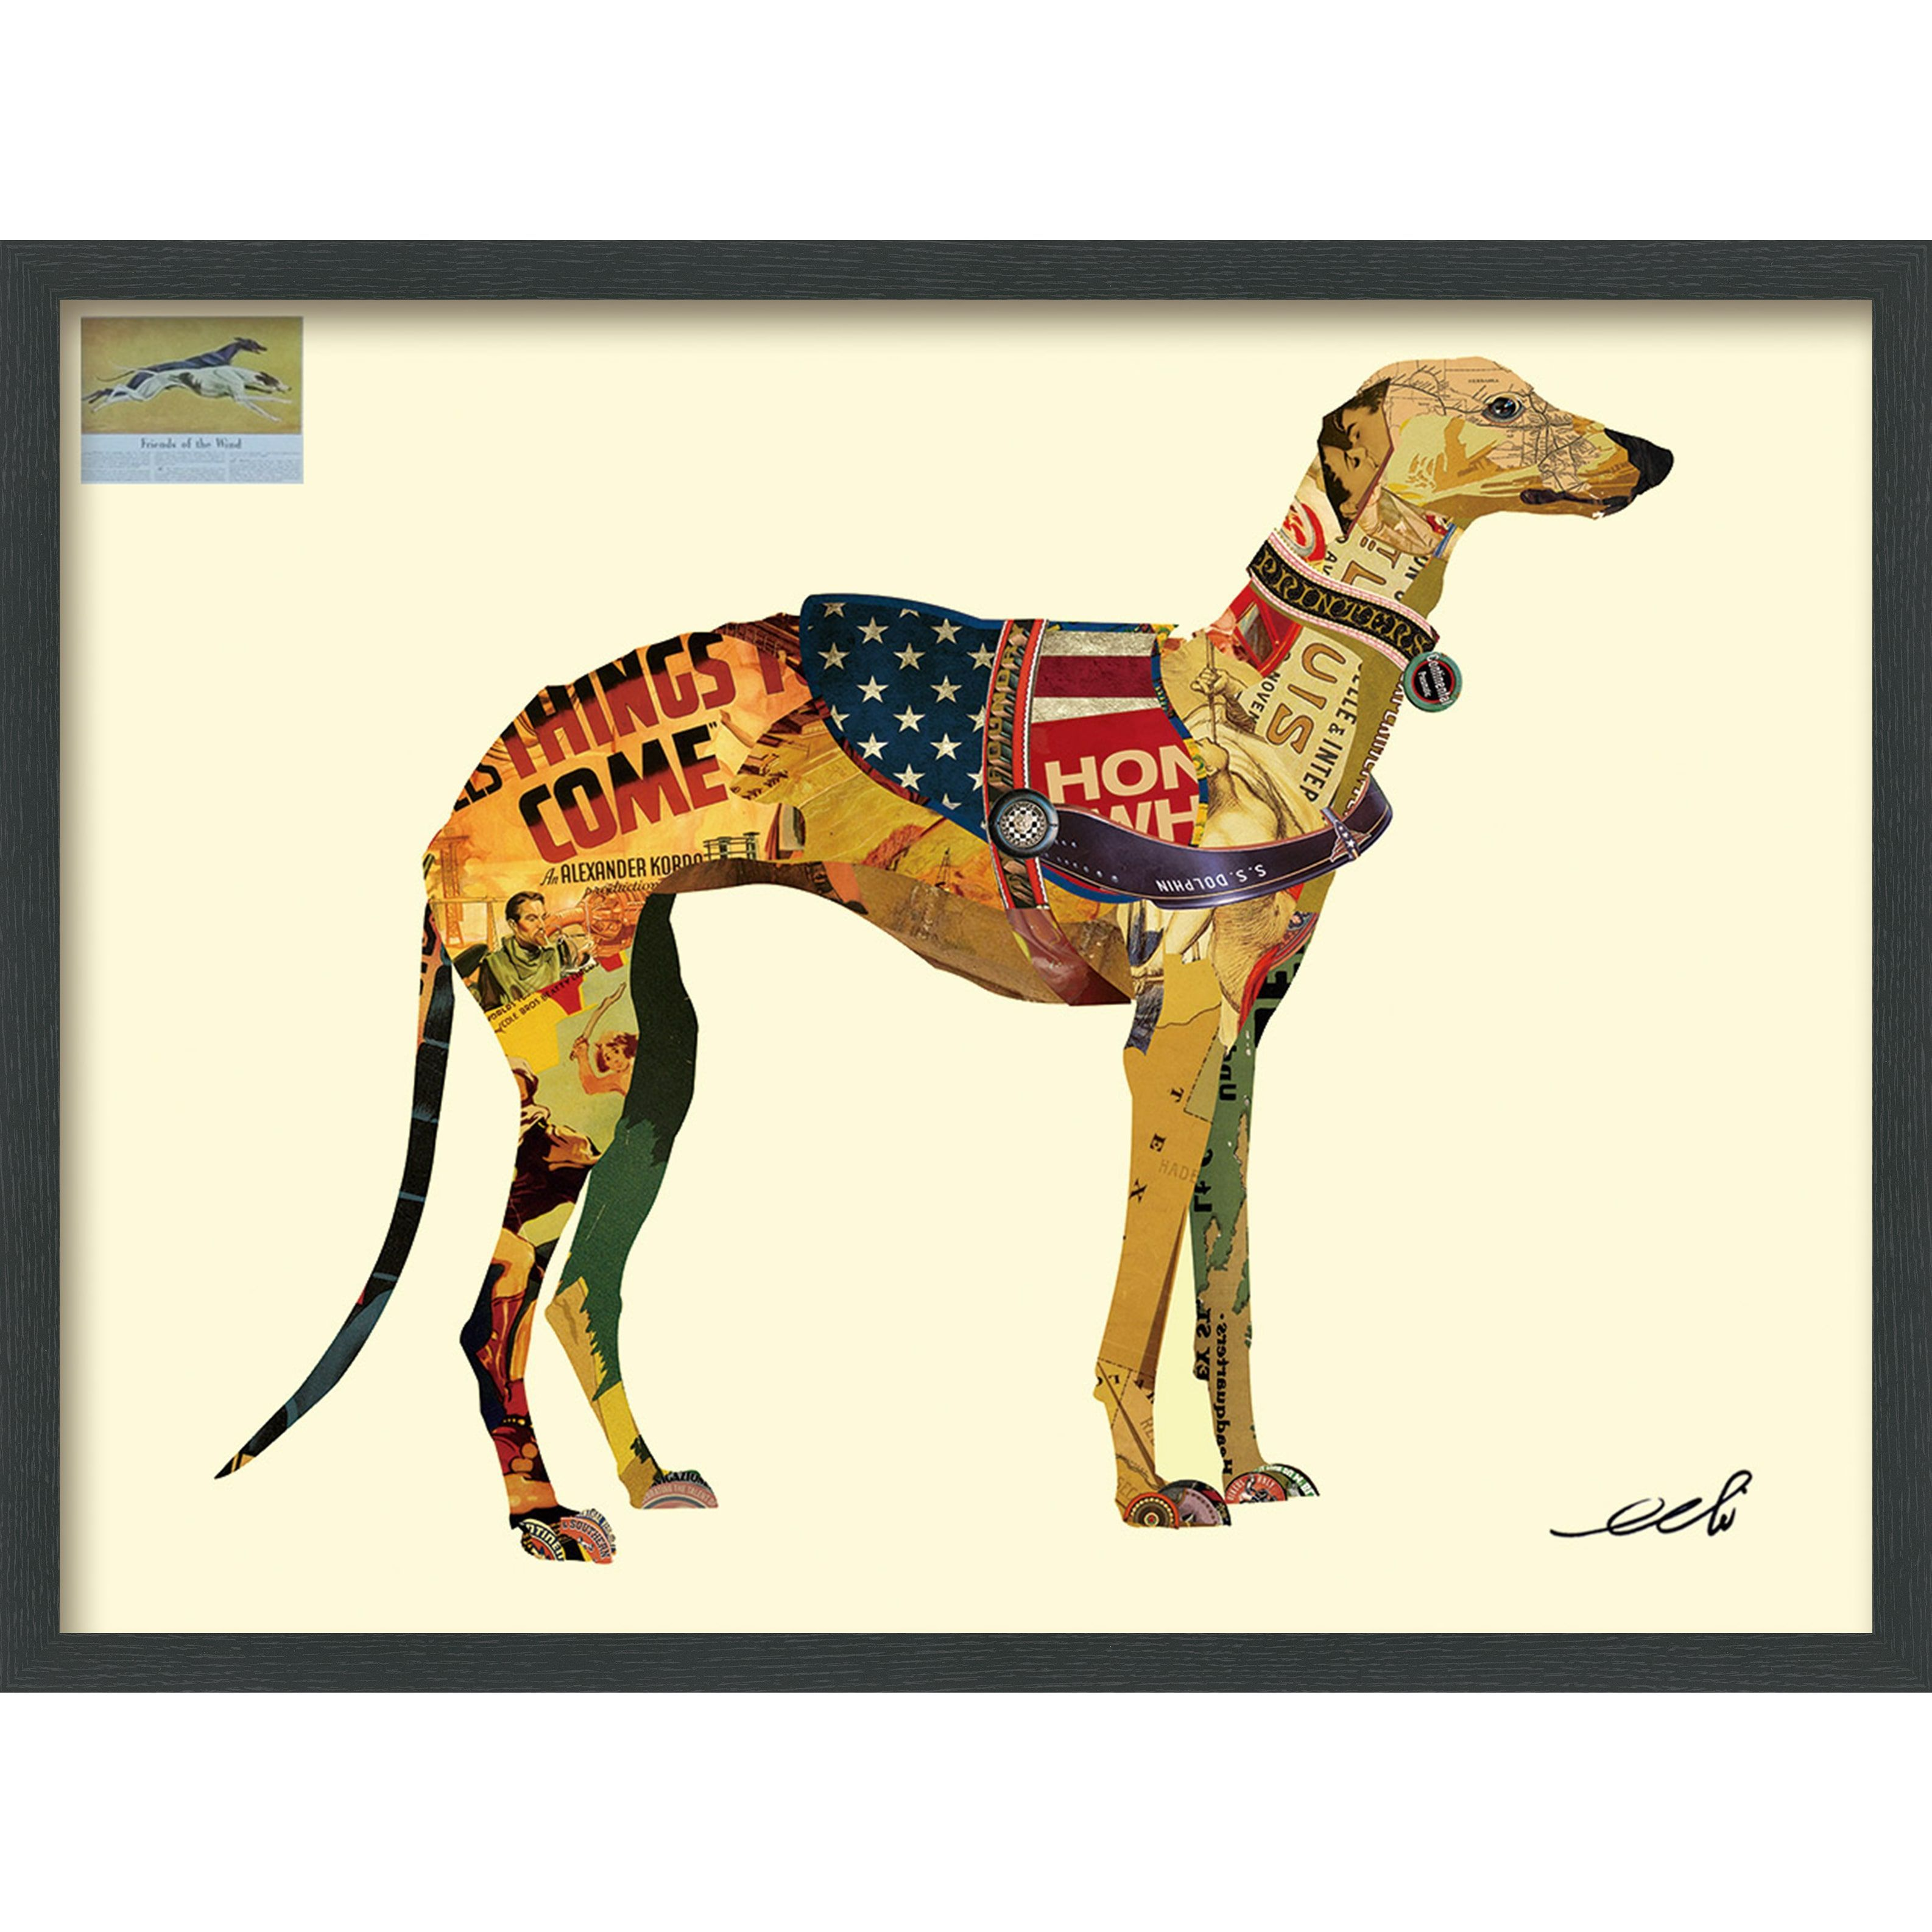 Empire art greyhound hand made signed art collage by ead